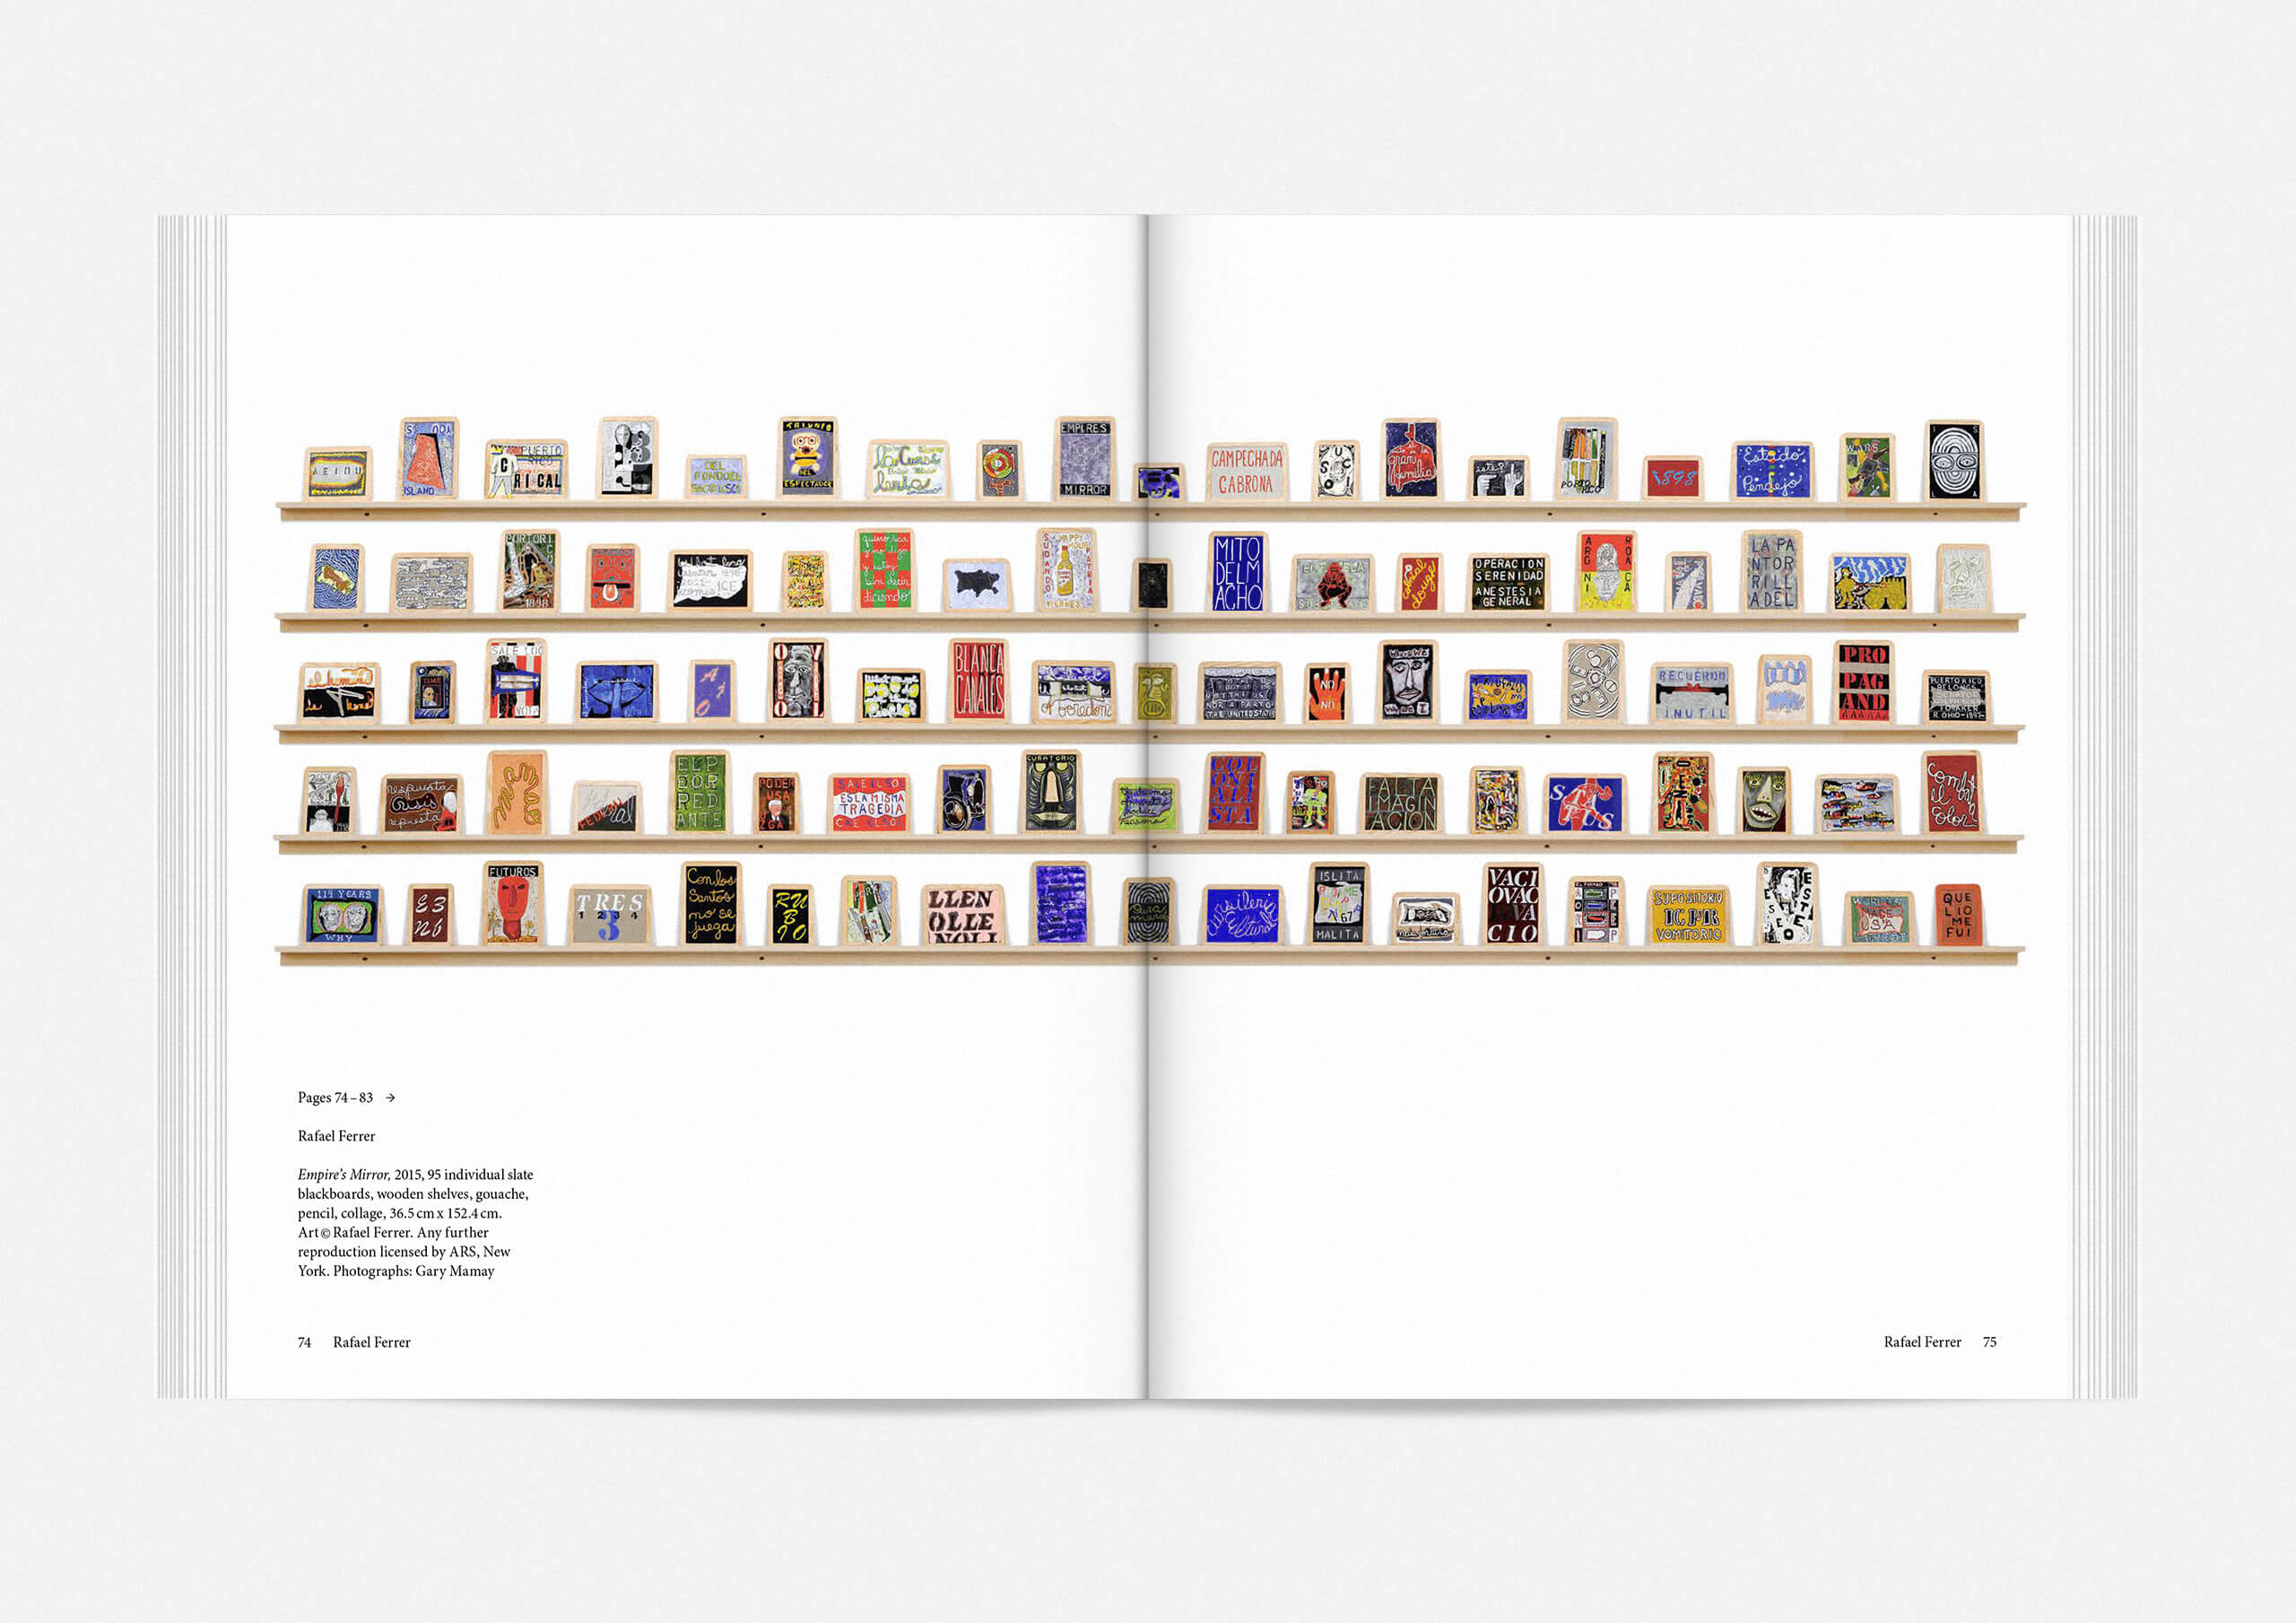 https://neuegestaltung.de/media/pages/clients/protocollum-issue-no-05/e41625b009-1597415139/protocollum-5-page-7475-ng.jpg